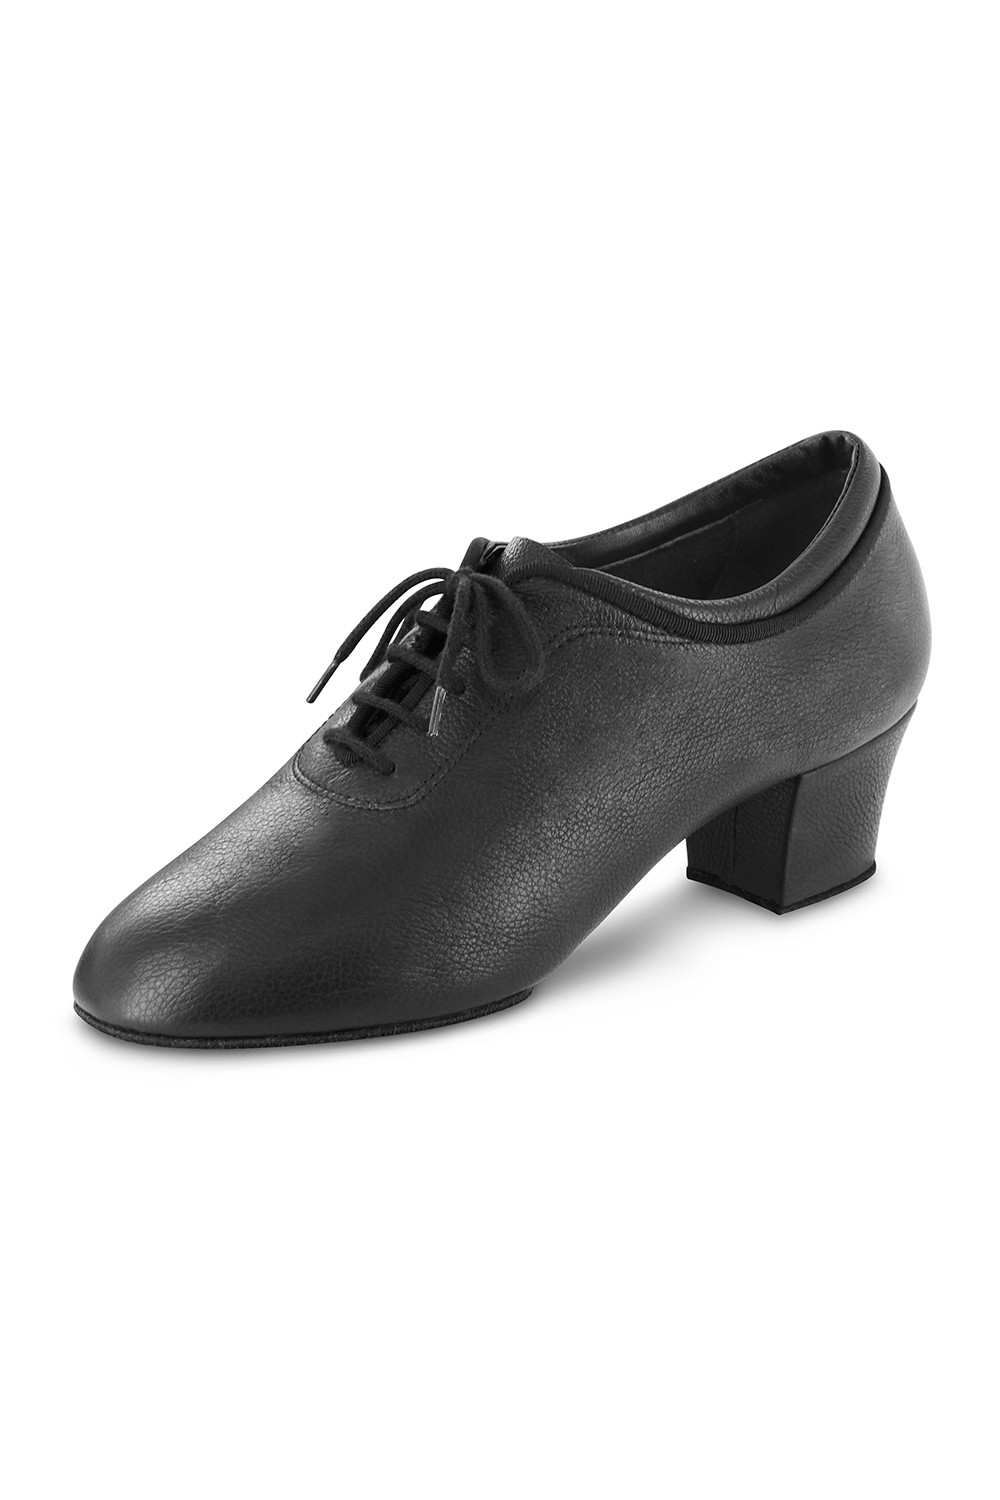 Joaquin Men's Ballroom & Latin Shoes